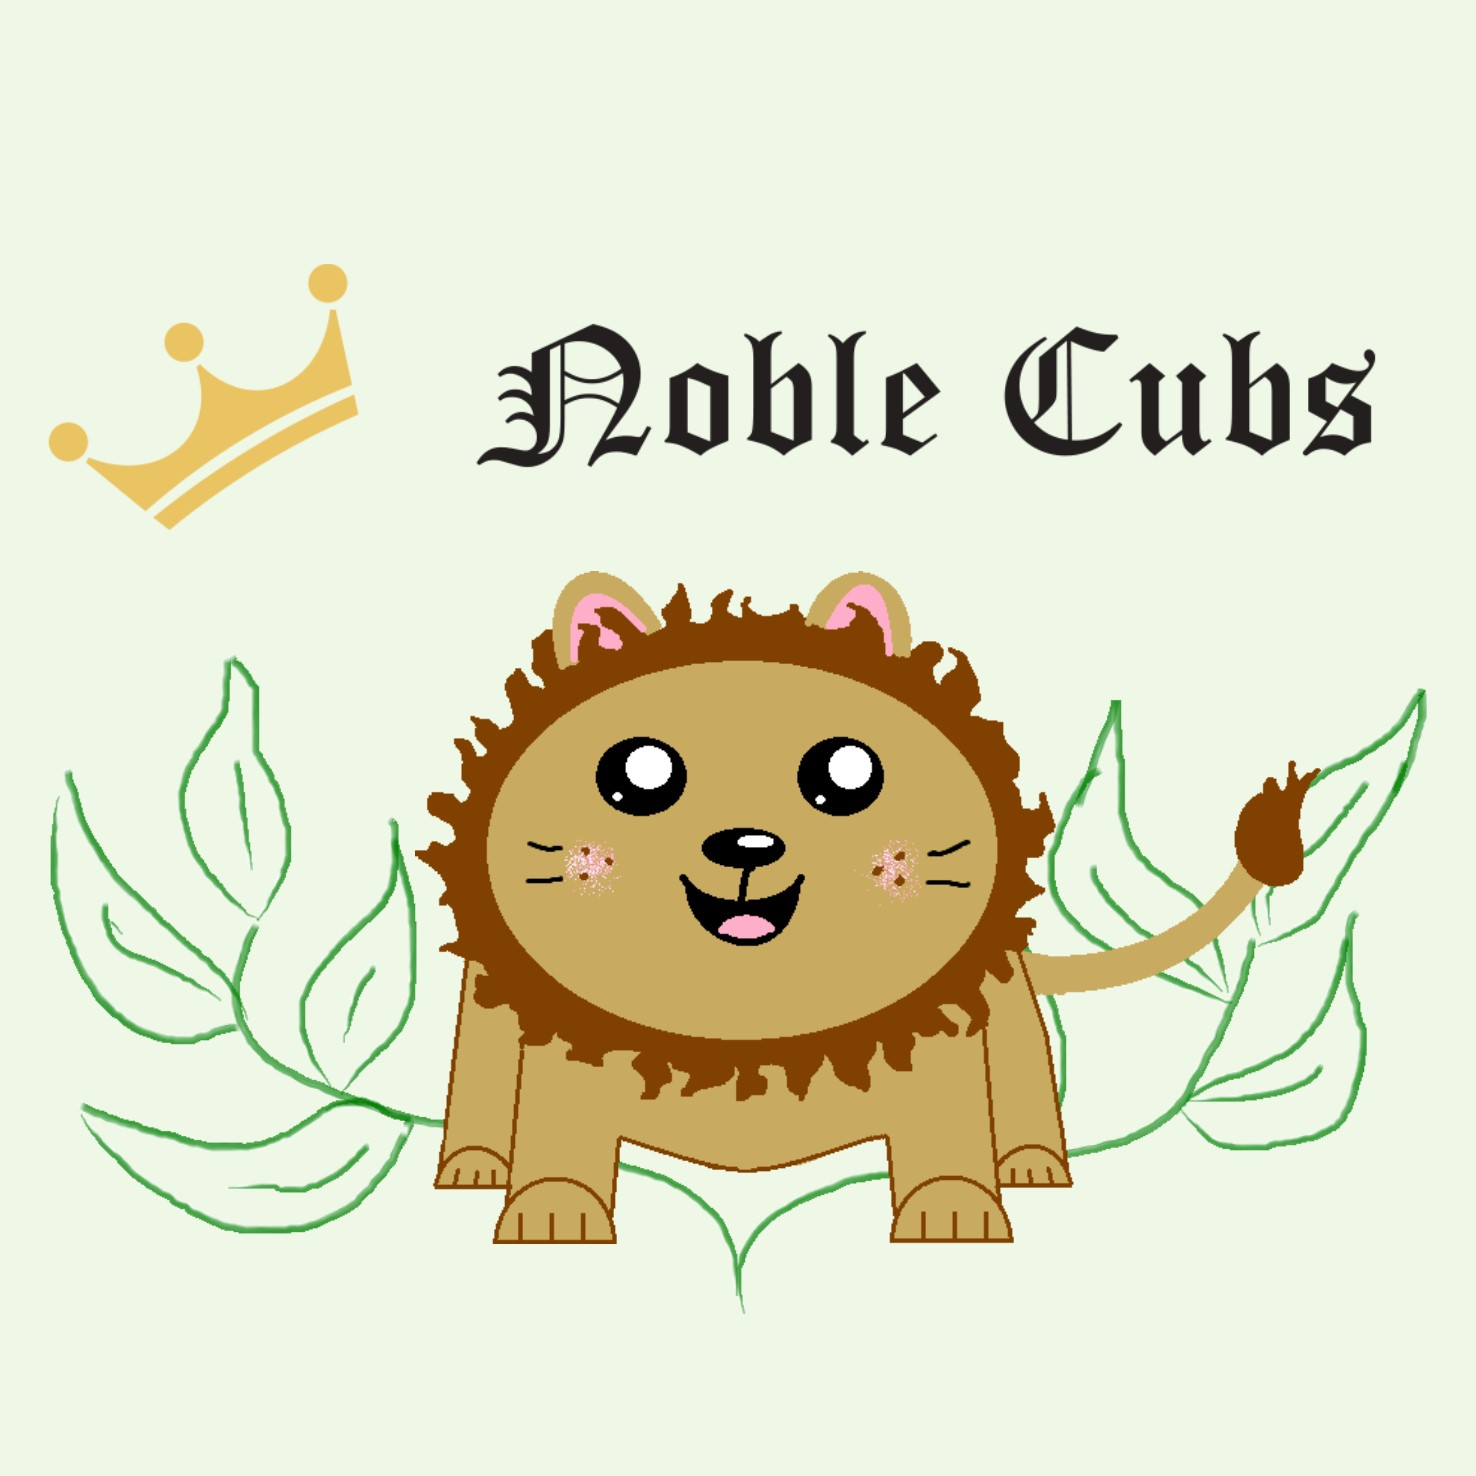 Noble Cubs